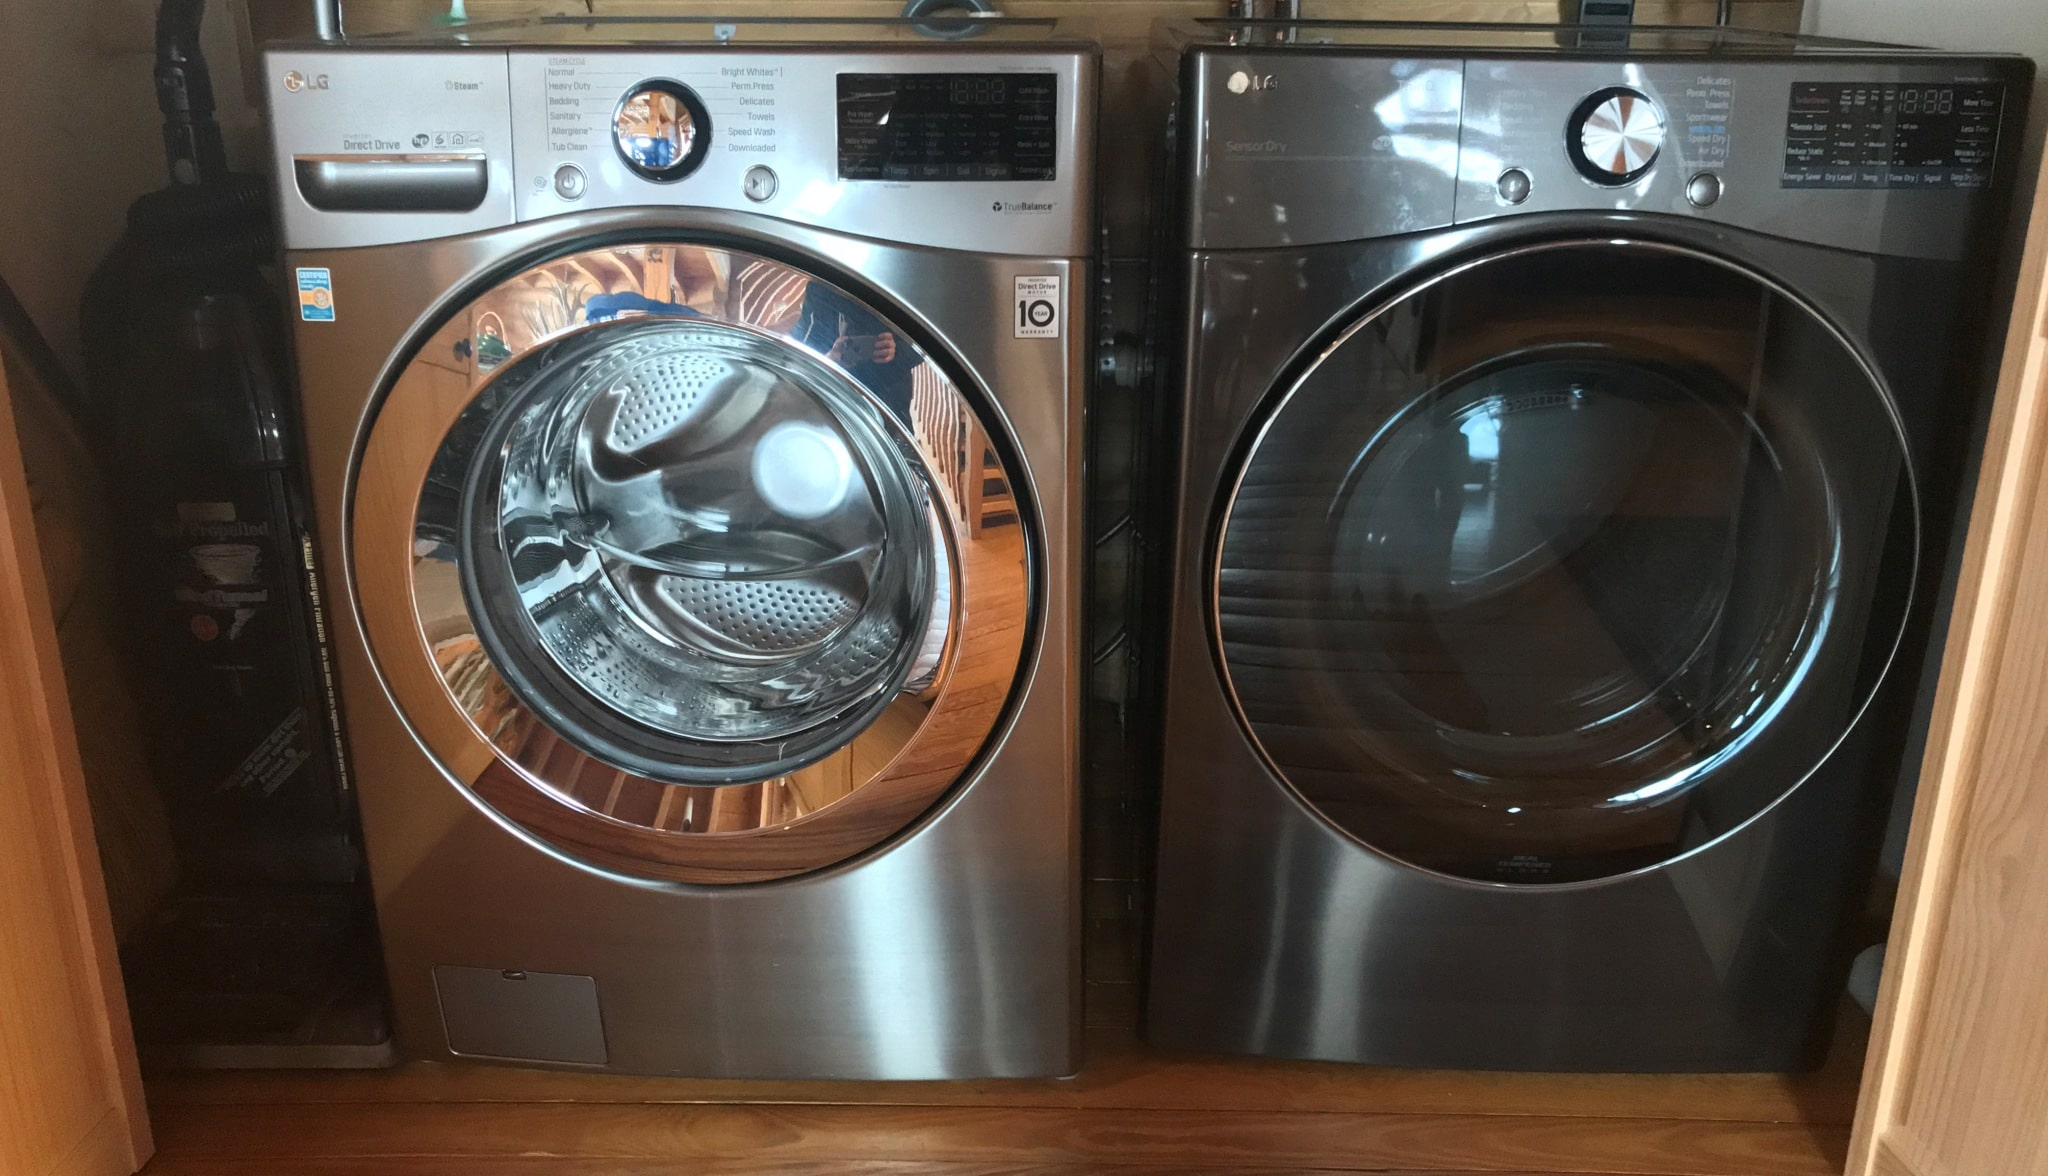 Full size Washer and Dryer upstairs